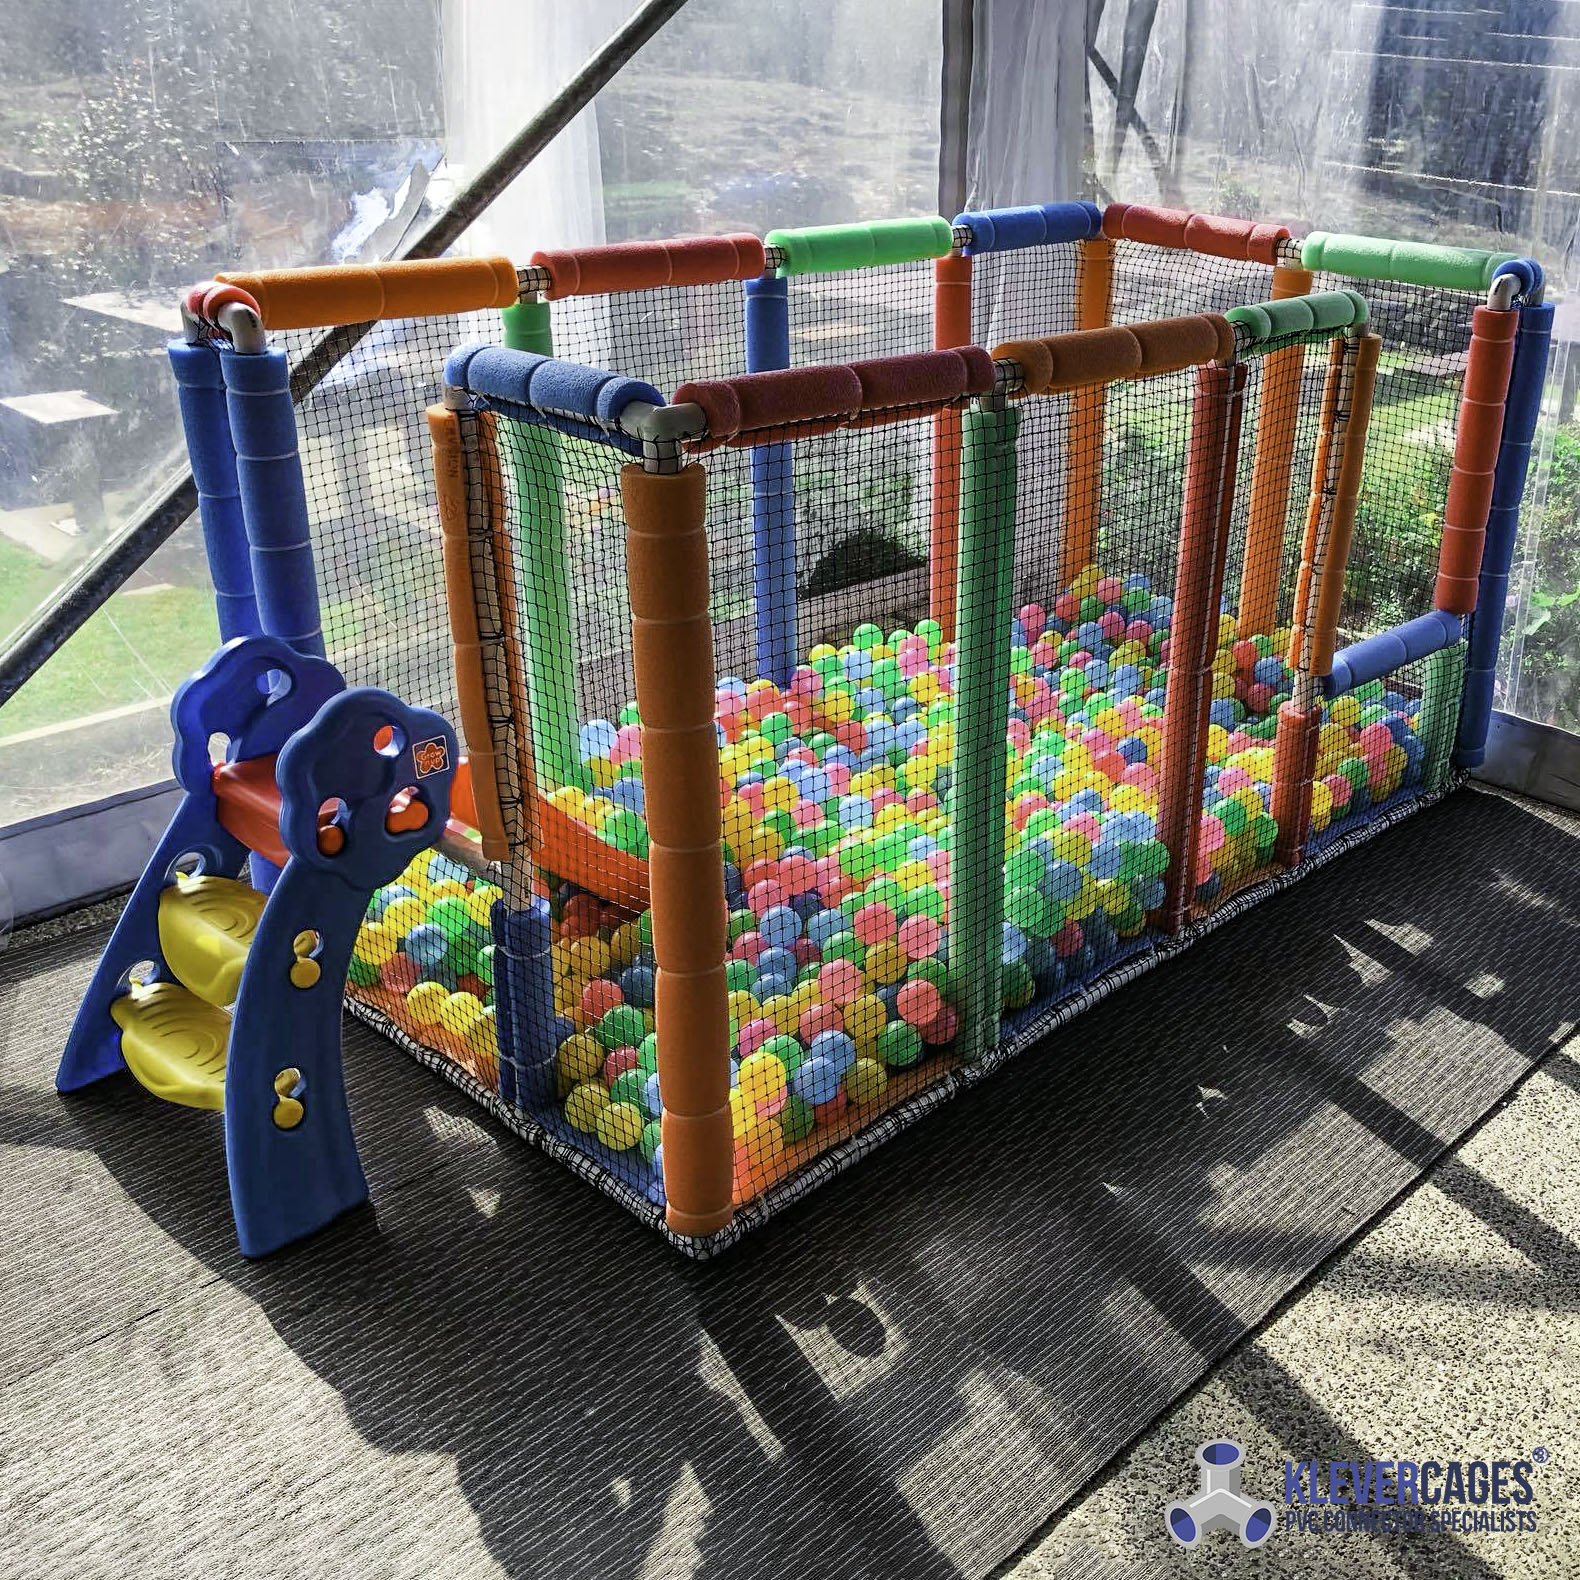 Kids indoor ball pit with stairs padded with pool noodles built with PVC pipe and 3 way connector fittings from Klever Cages